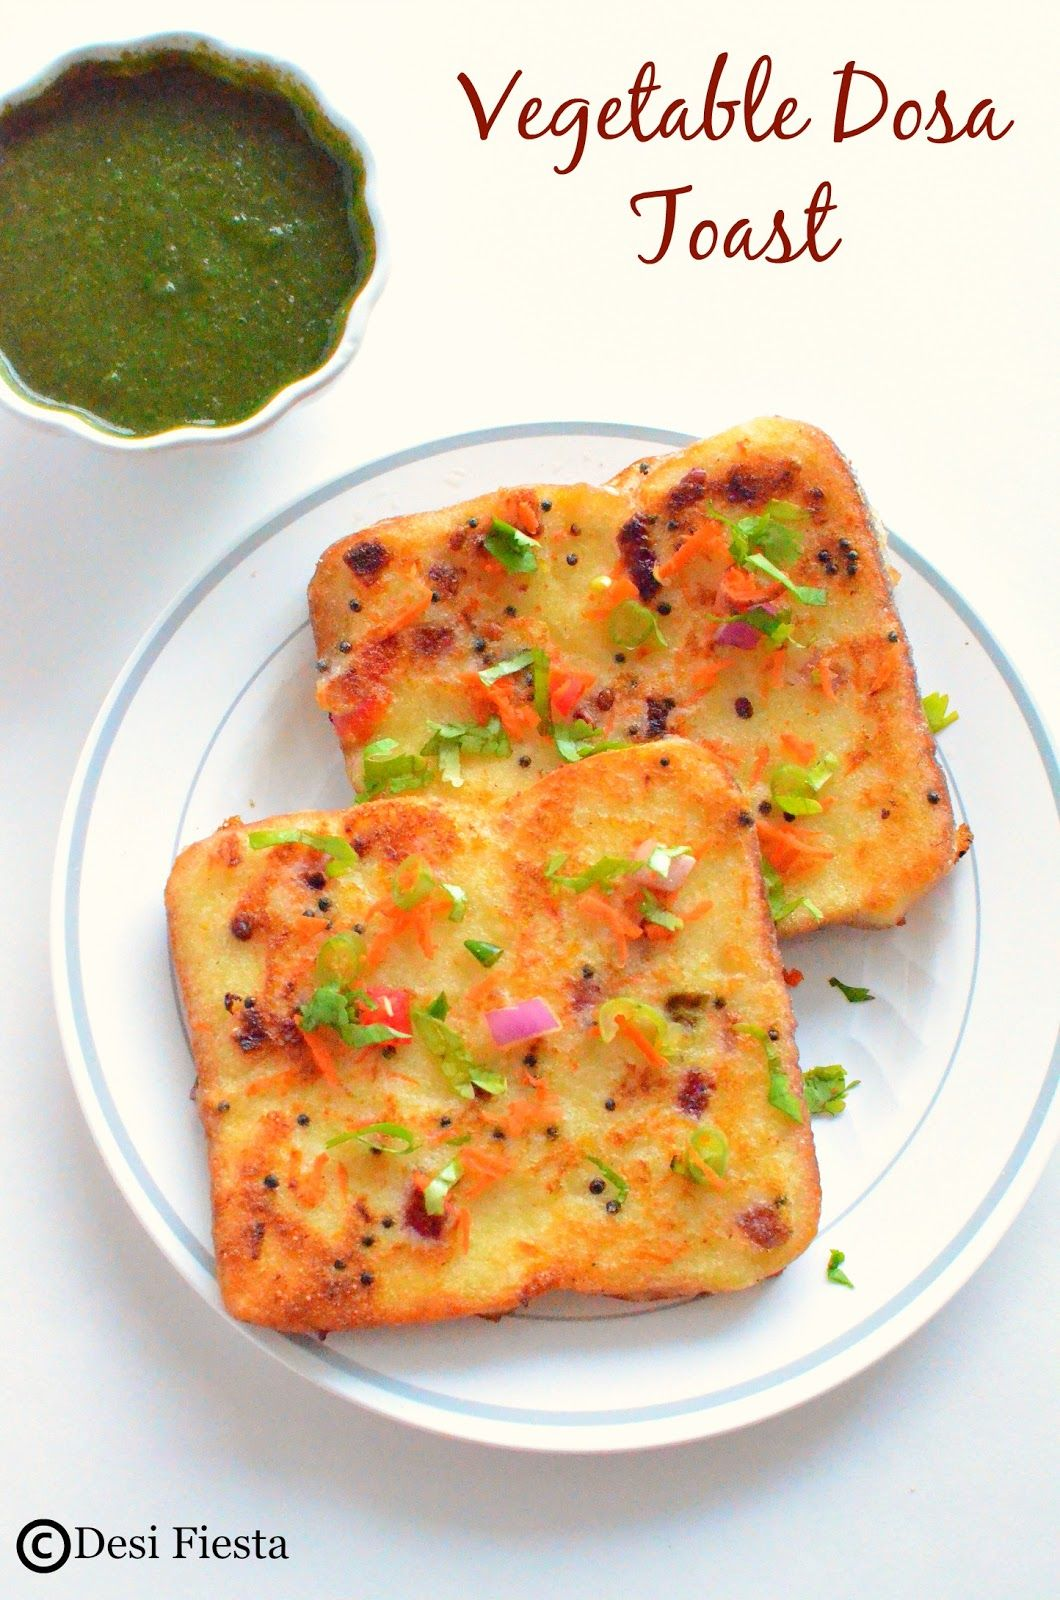 Vegetable dosa toast recipe food delight pinterest recipes vegetable dosa toast recipe forumfinder Choice Image